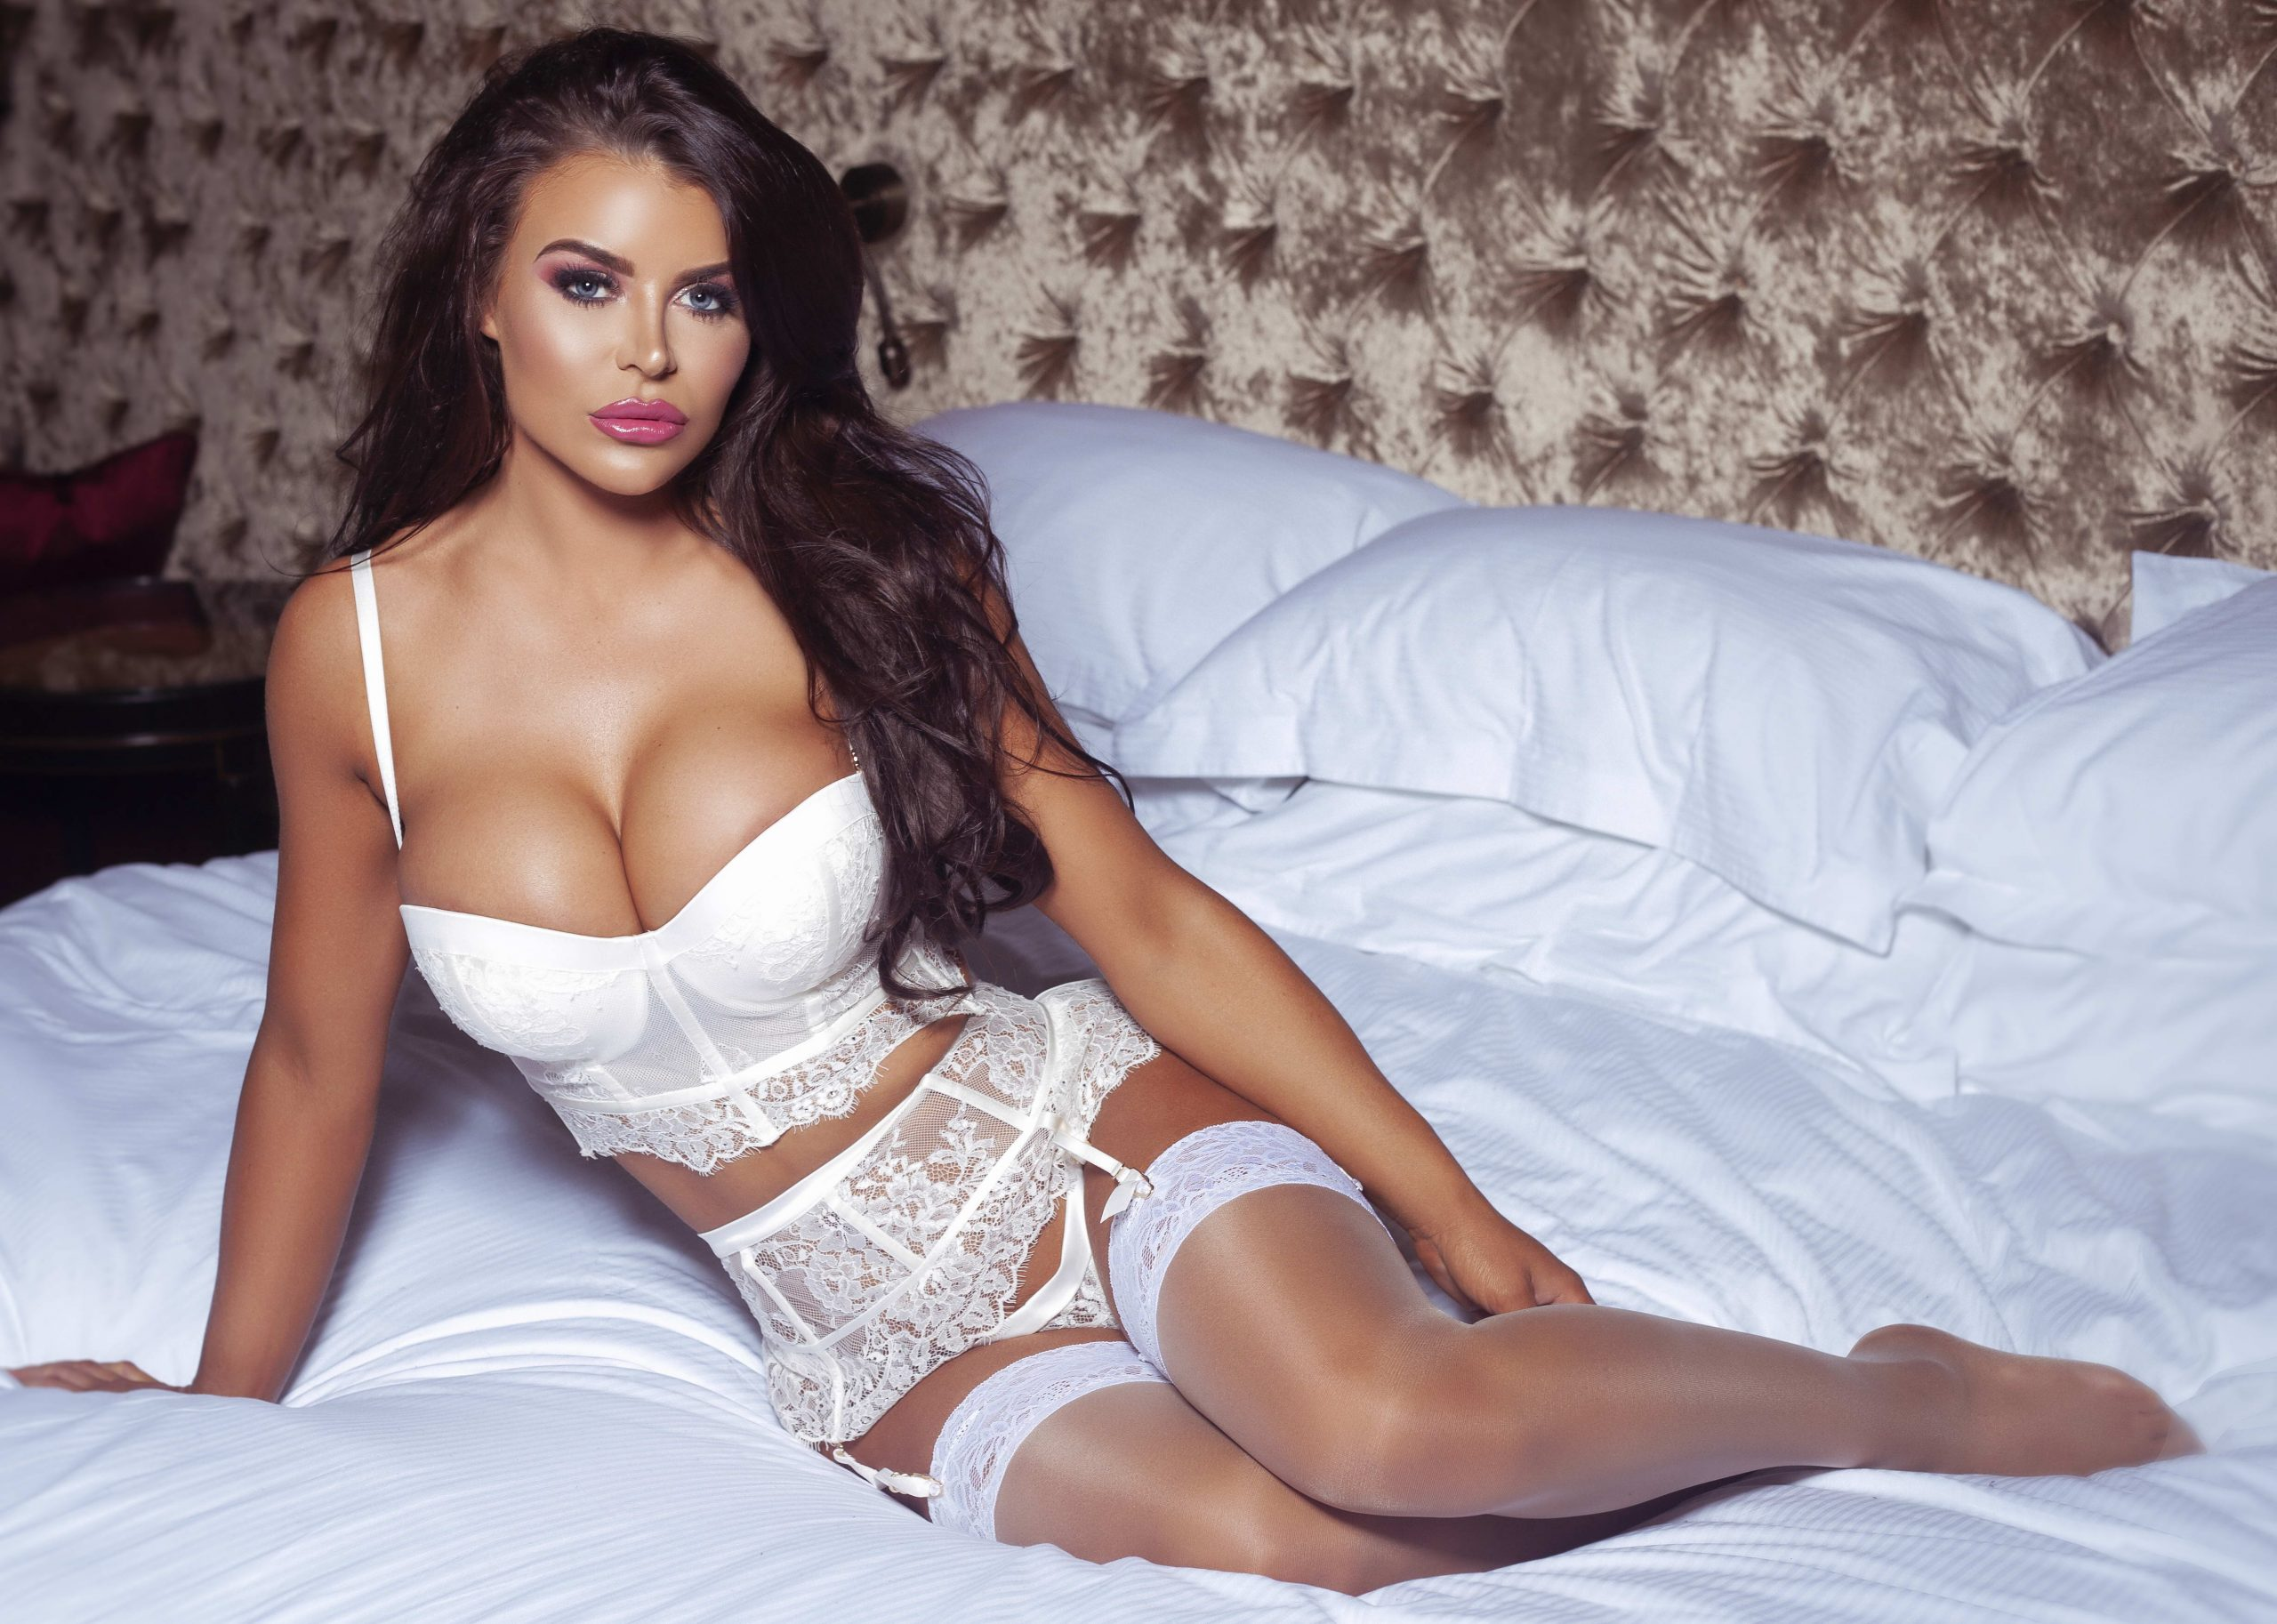 Few remarkable qualities that I constantly discover in London escorts